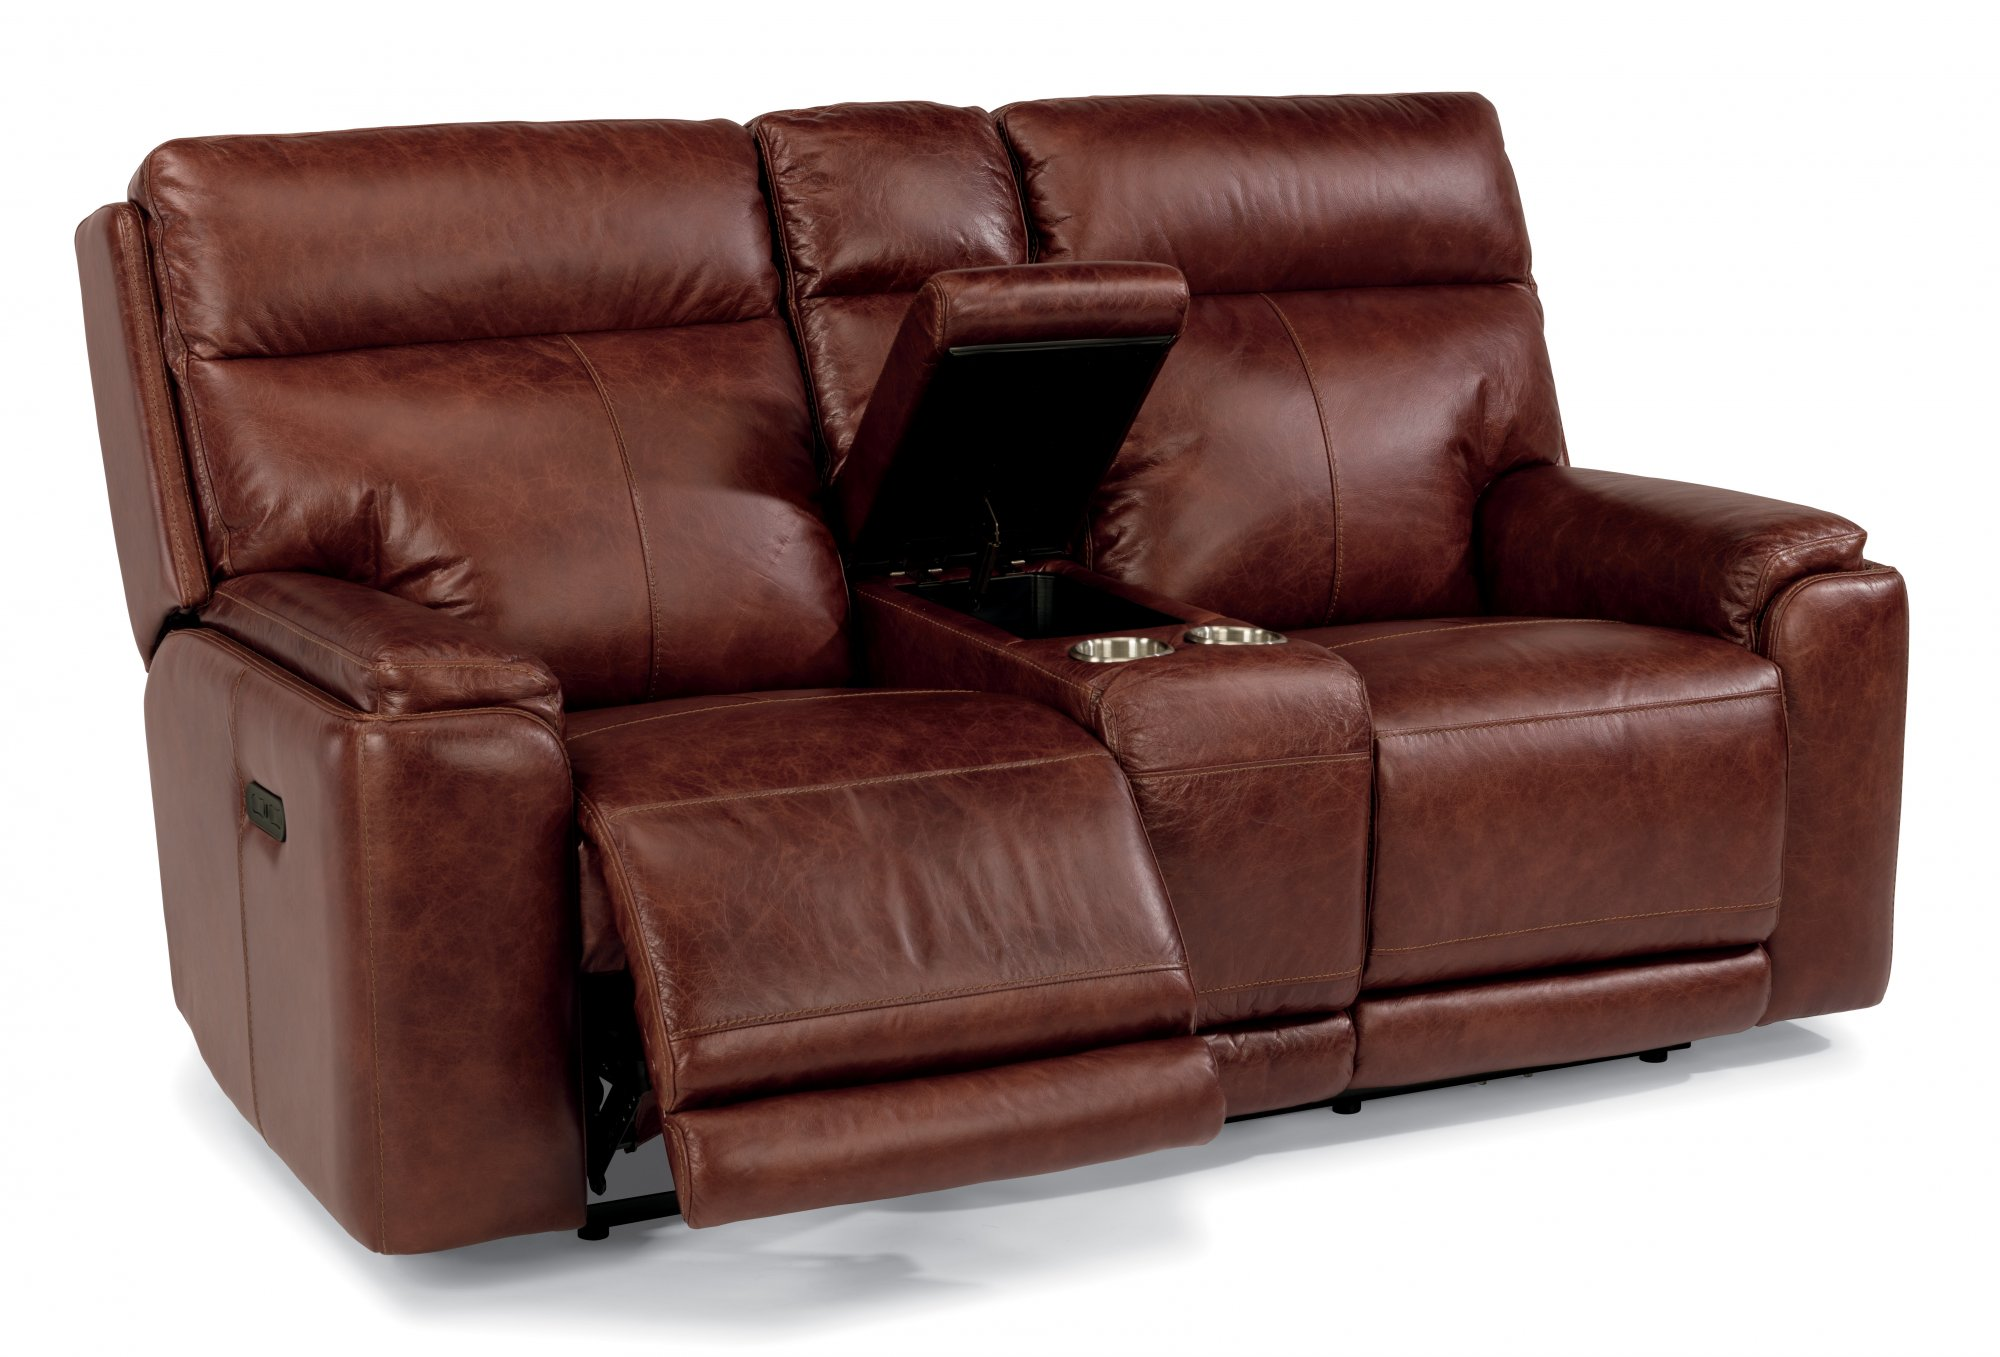 leather loveseat recliner leather power reclining loveseat with console and power headrests gqsmgtb